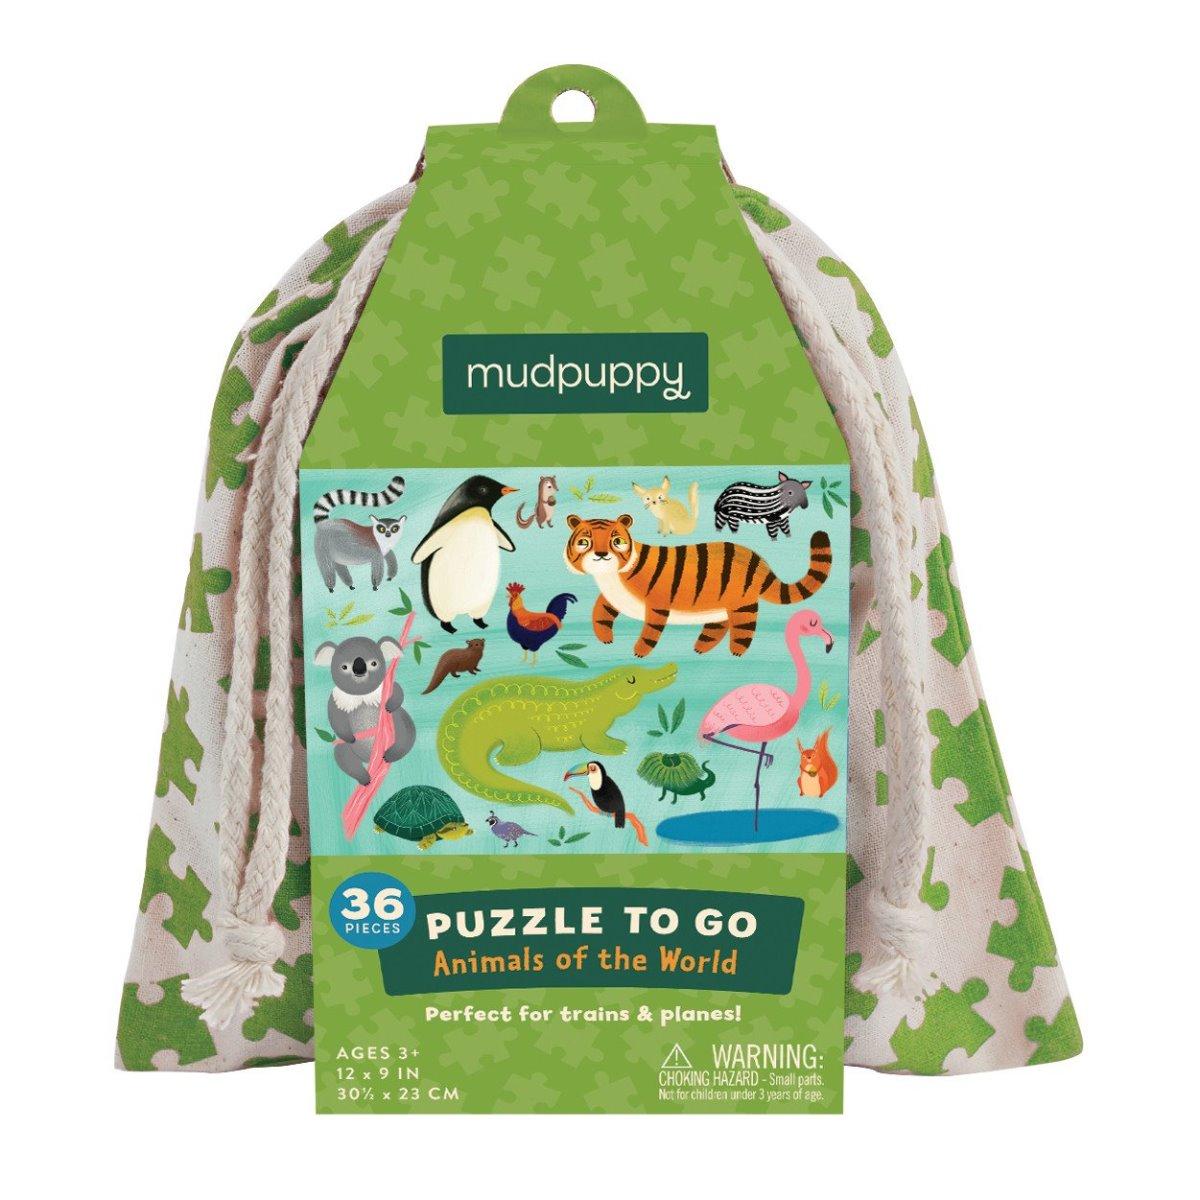 Mudpuppy - Puzzle To Go Animals Of The World 36 Pc